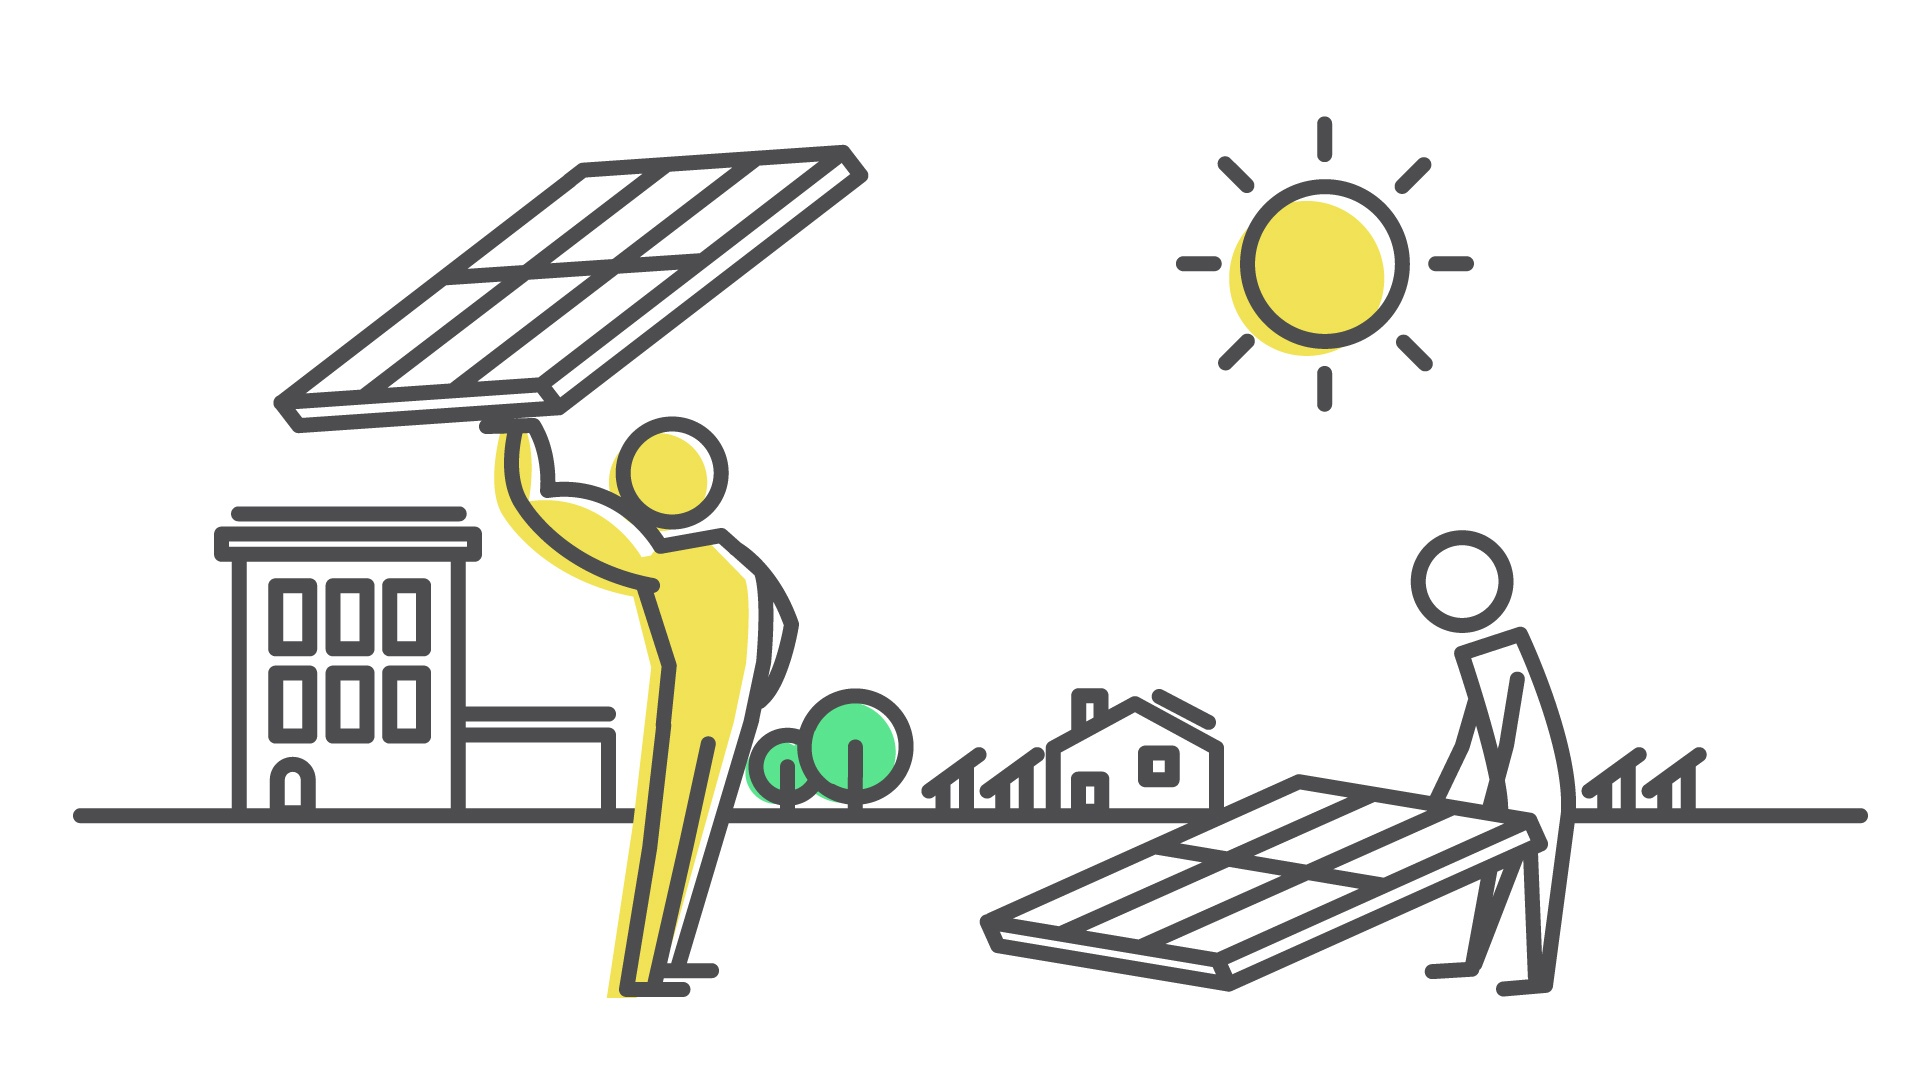 Physically fit solar installer heroically hoists a solar panel overhead as wimpish installer struggles to elevate his panel from the ground